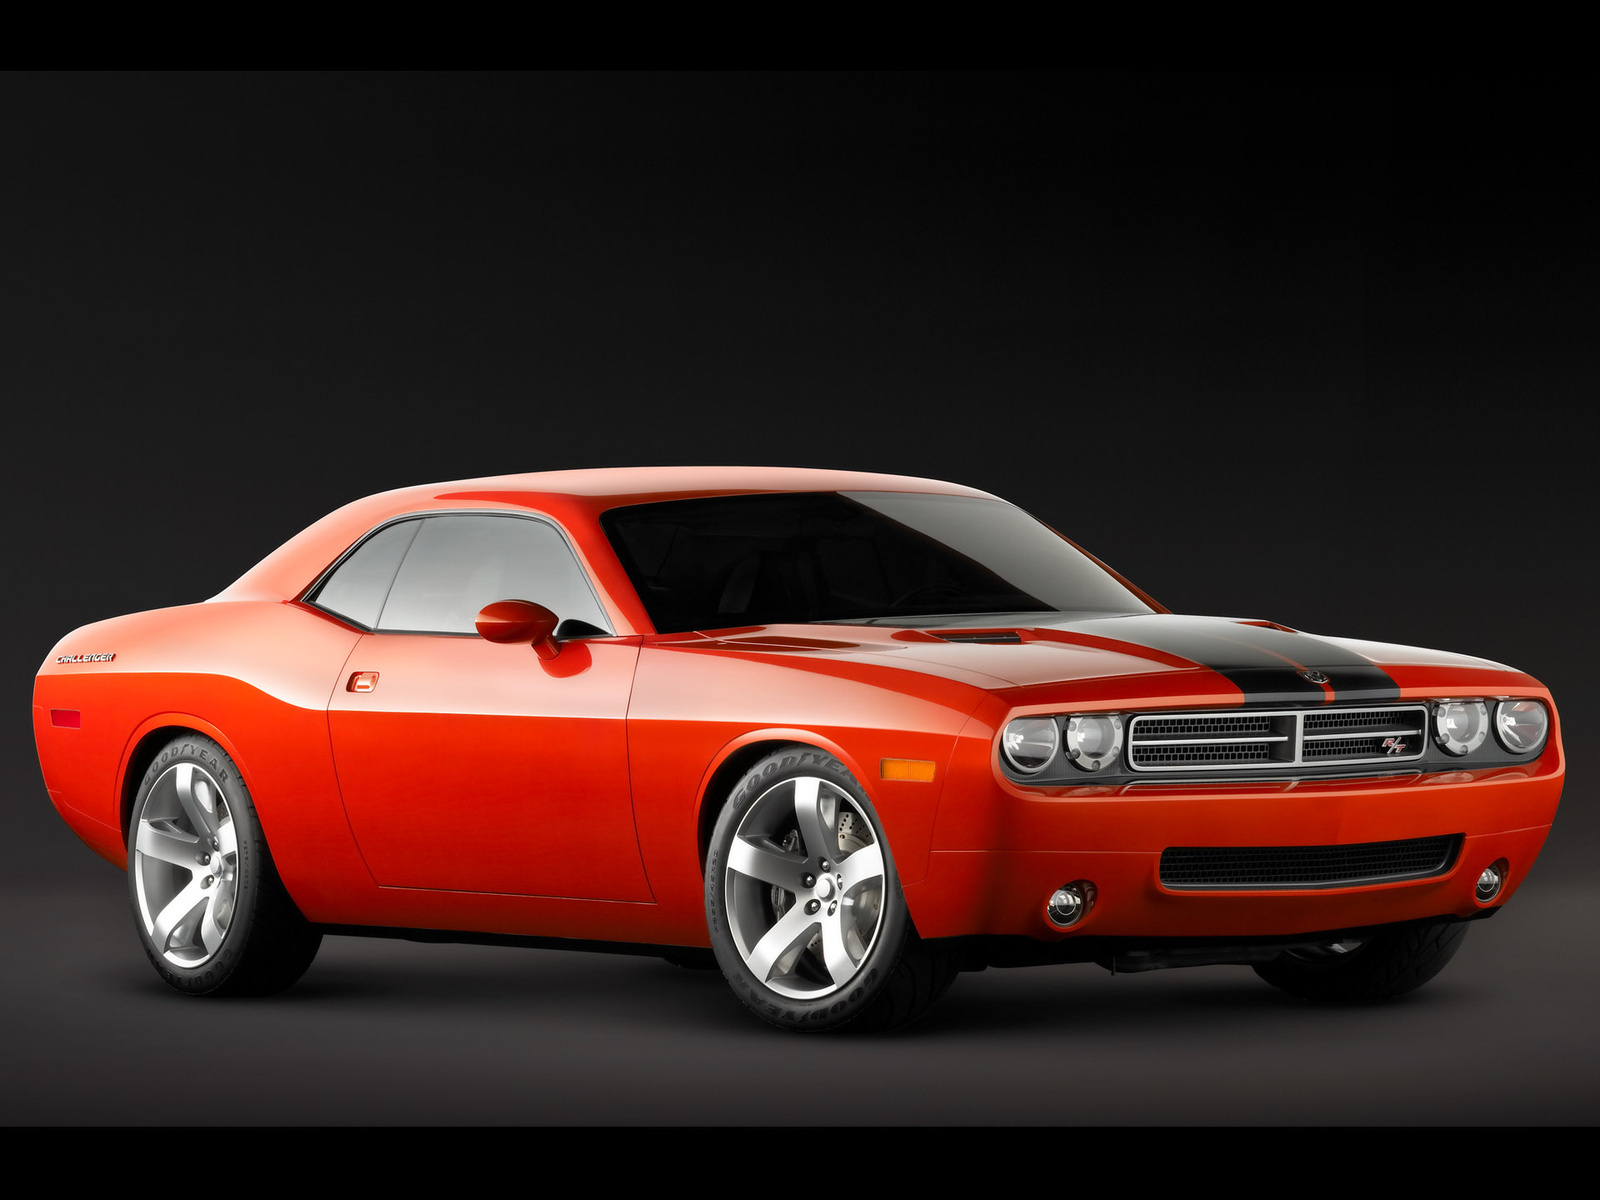 Ford Lincoln Of Franklin >> 2009 Dodge Challenger - Overview - CarGurus